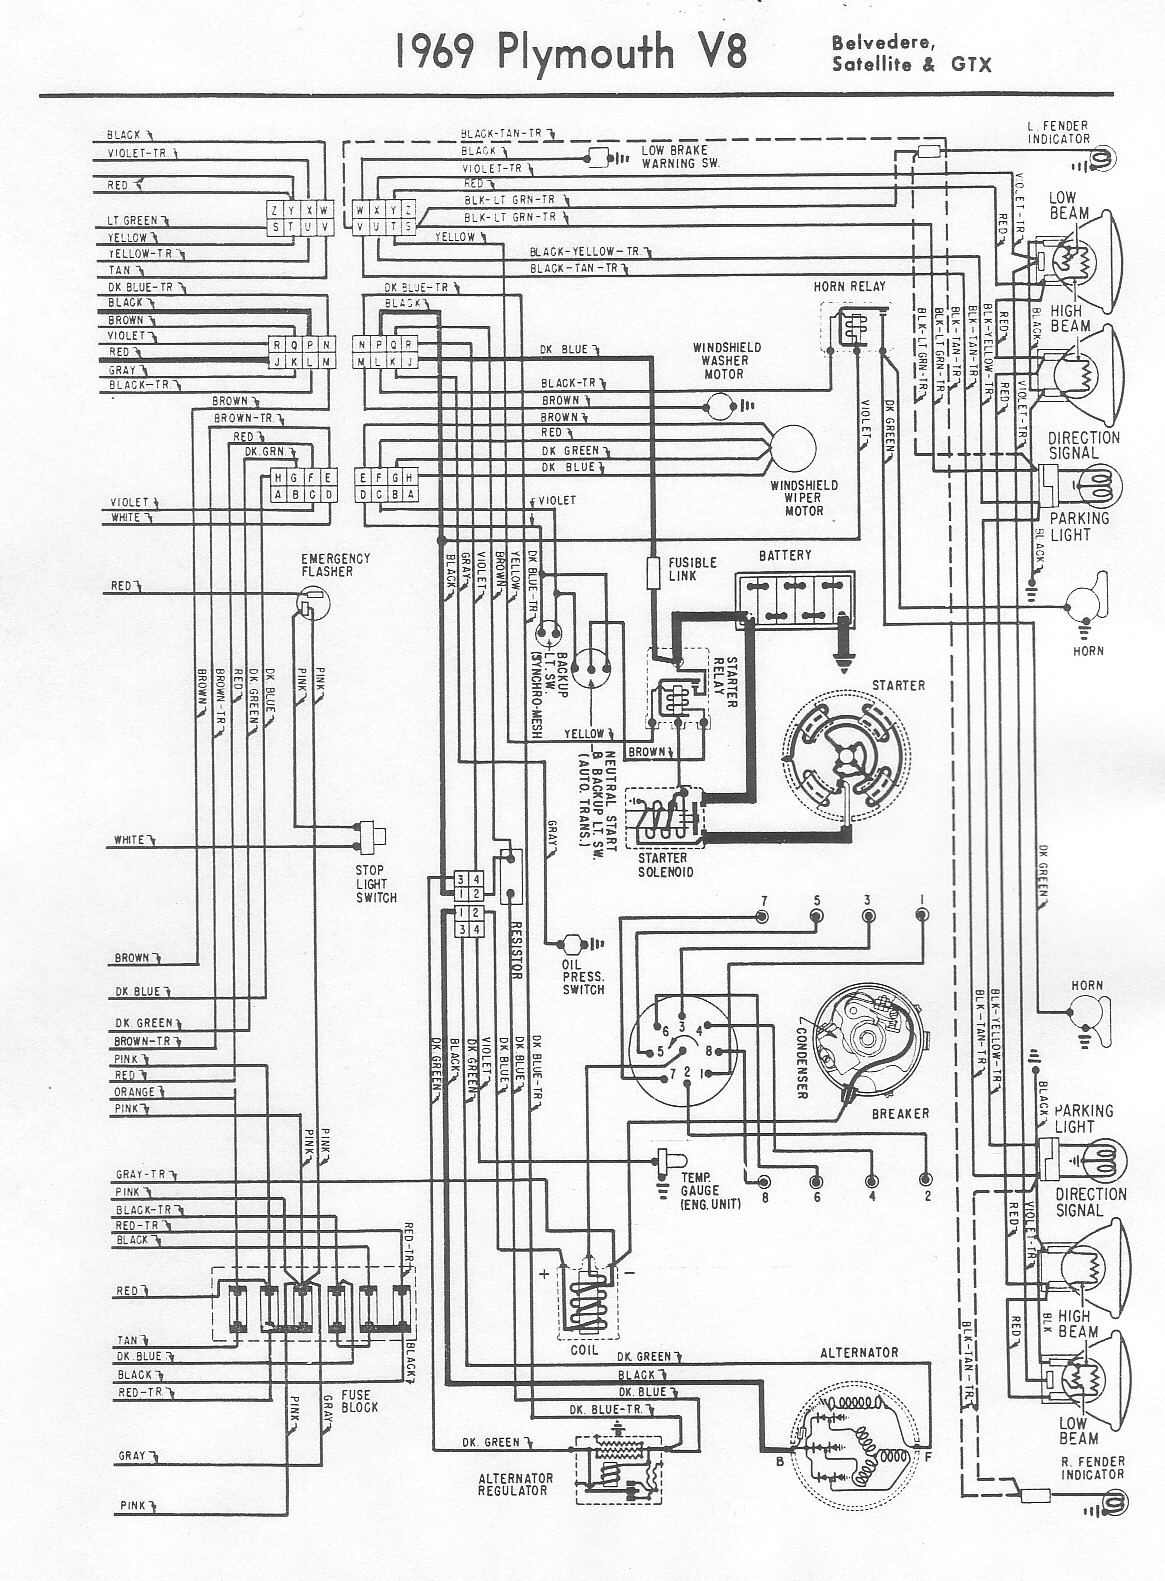 1970 gtx wiring diagram wiring diagram schemes 1970 chevrolet camaro wiring  schematic 1968 plymouth roadrunner wiring